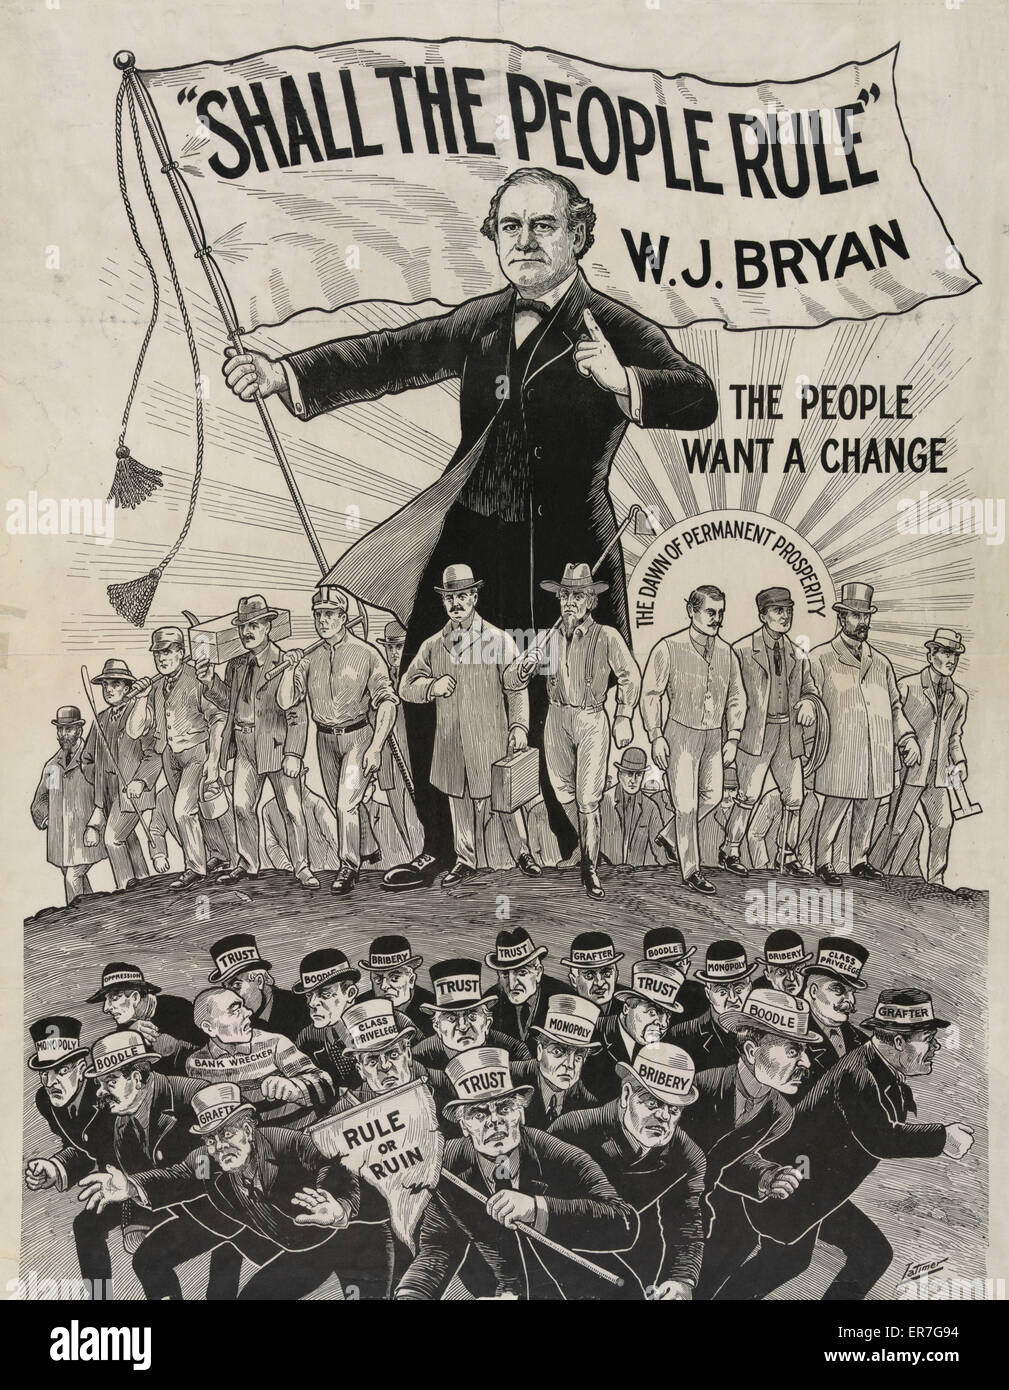 Shall the people rule. W.J. Bryan. - Stock Image